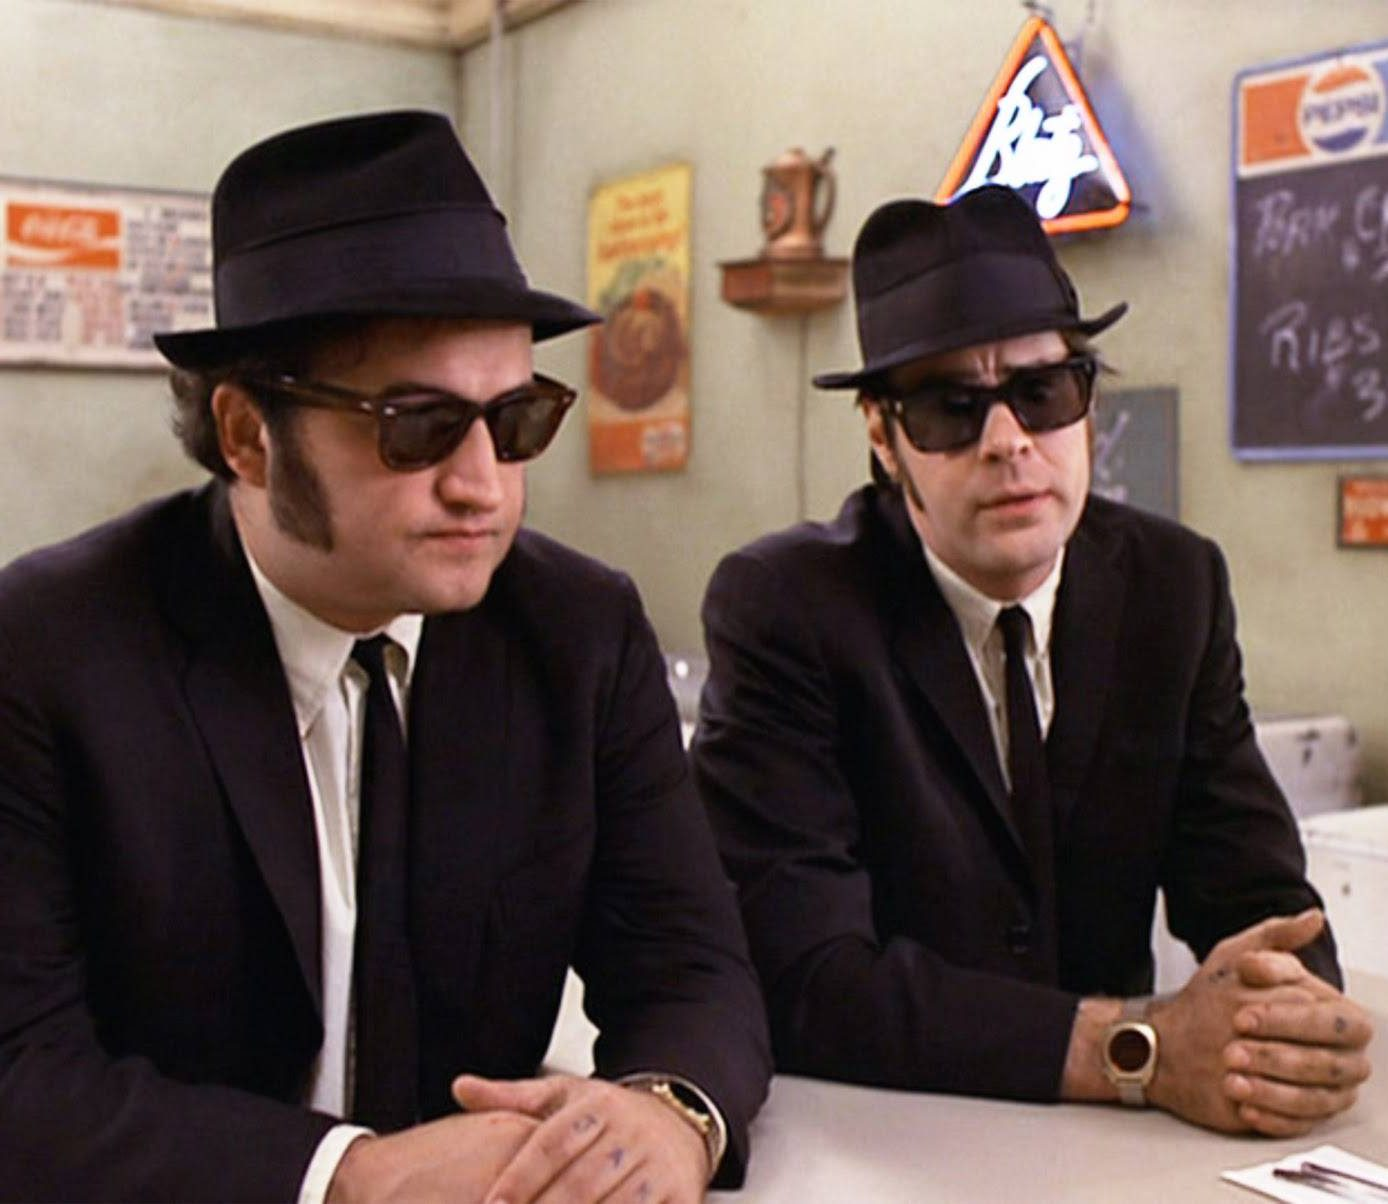 y e1602458641902 20 Things You Never Knew About John Belushi